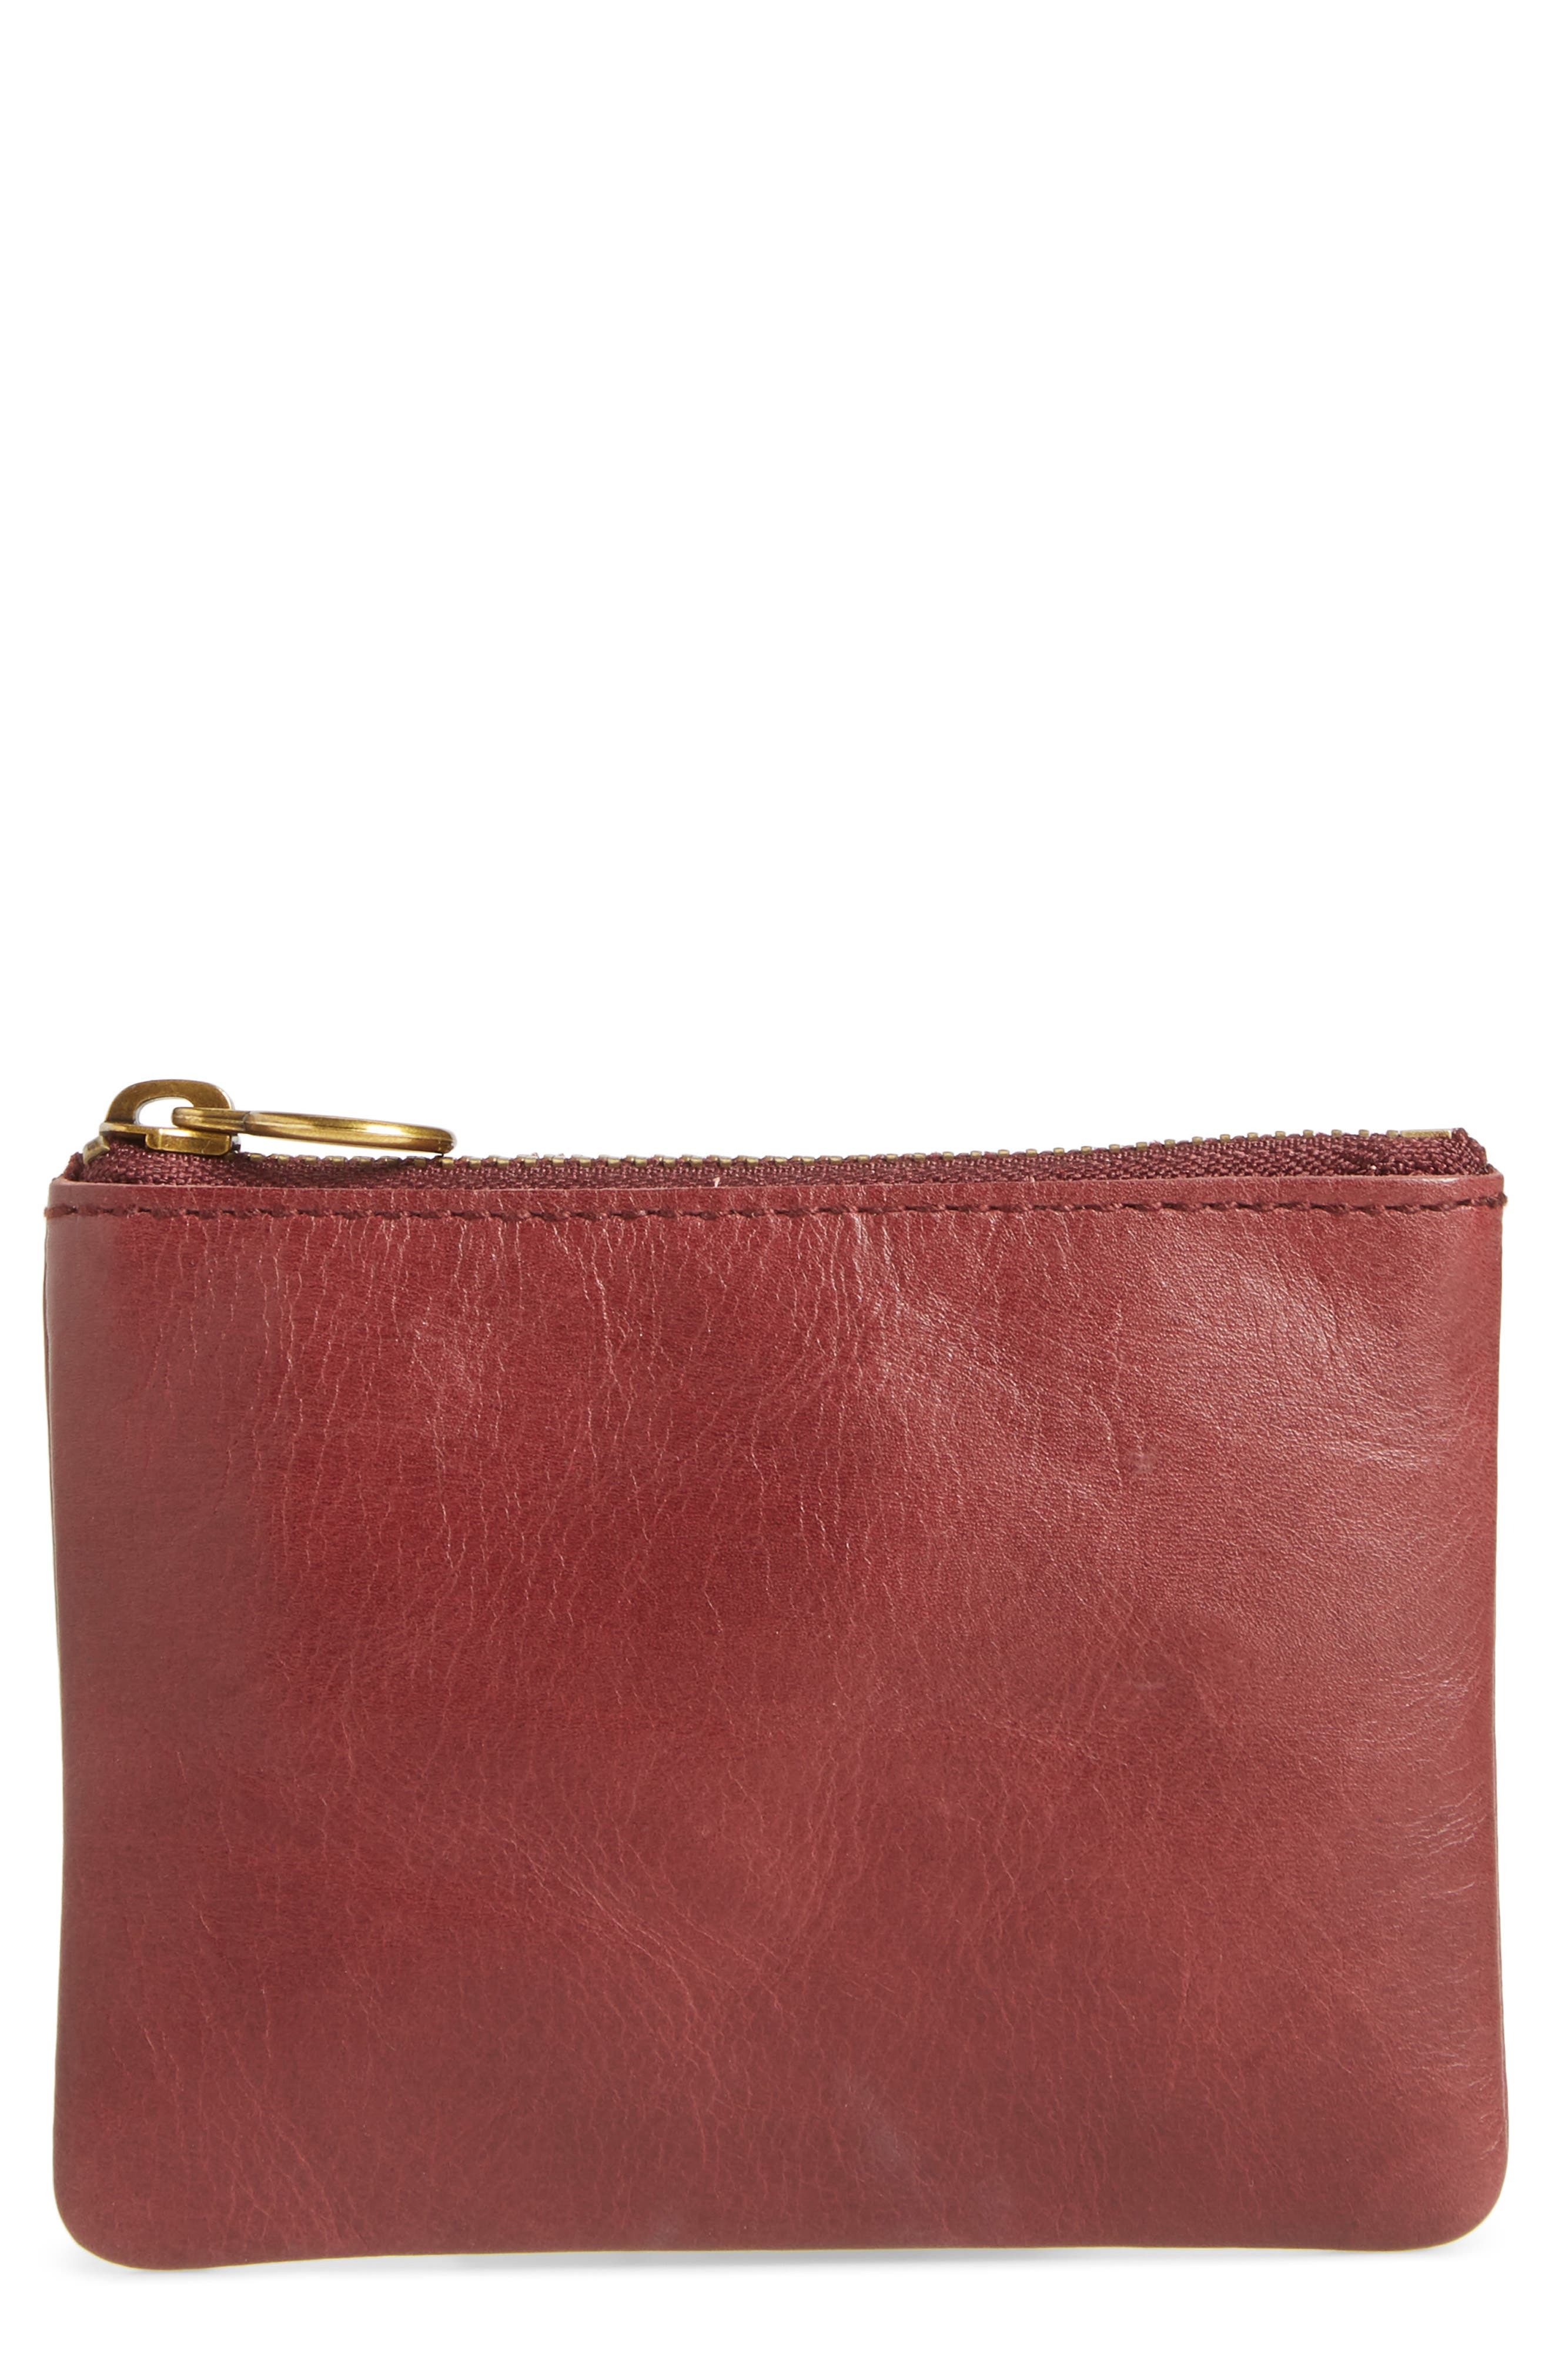 The Leather Pouch Wallet,                             Main thumbnail 1, color,                             DARK CABERNET